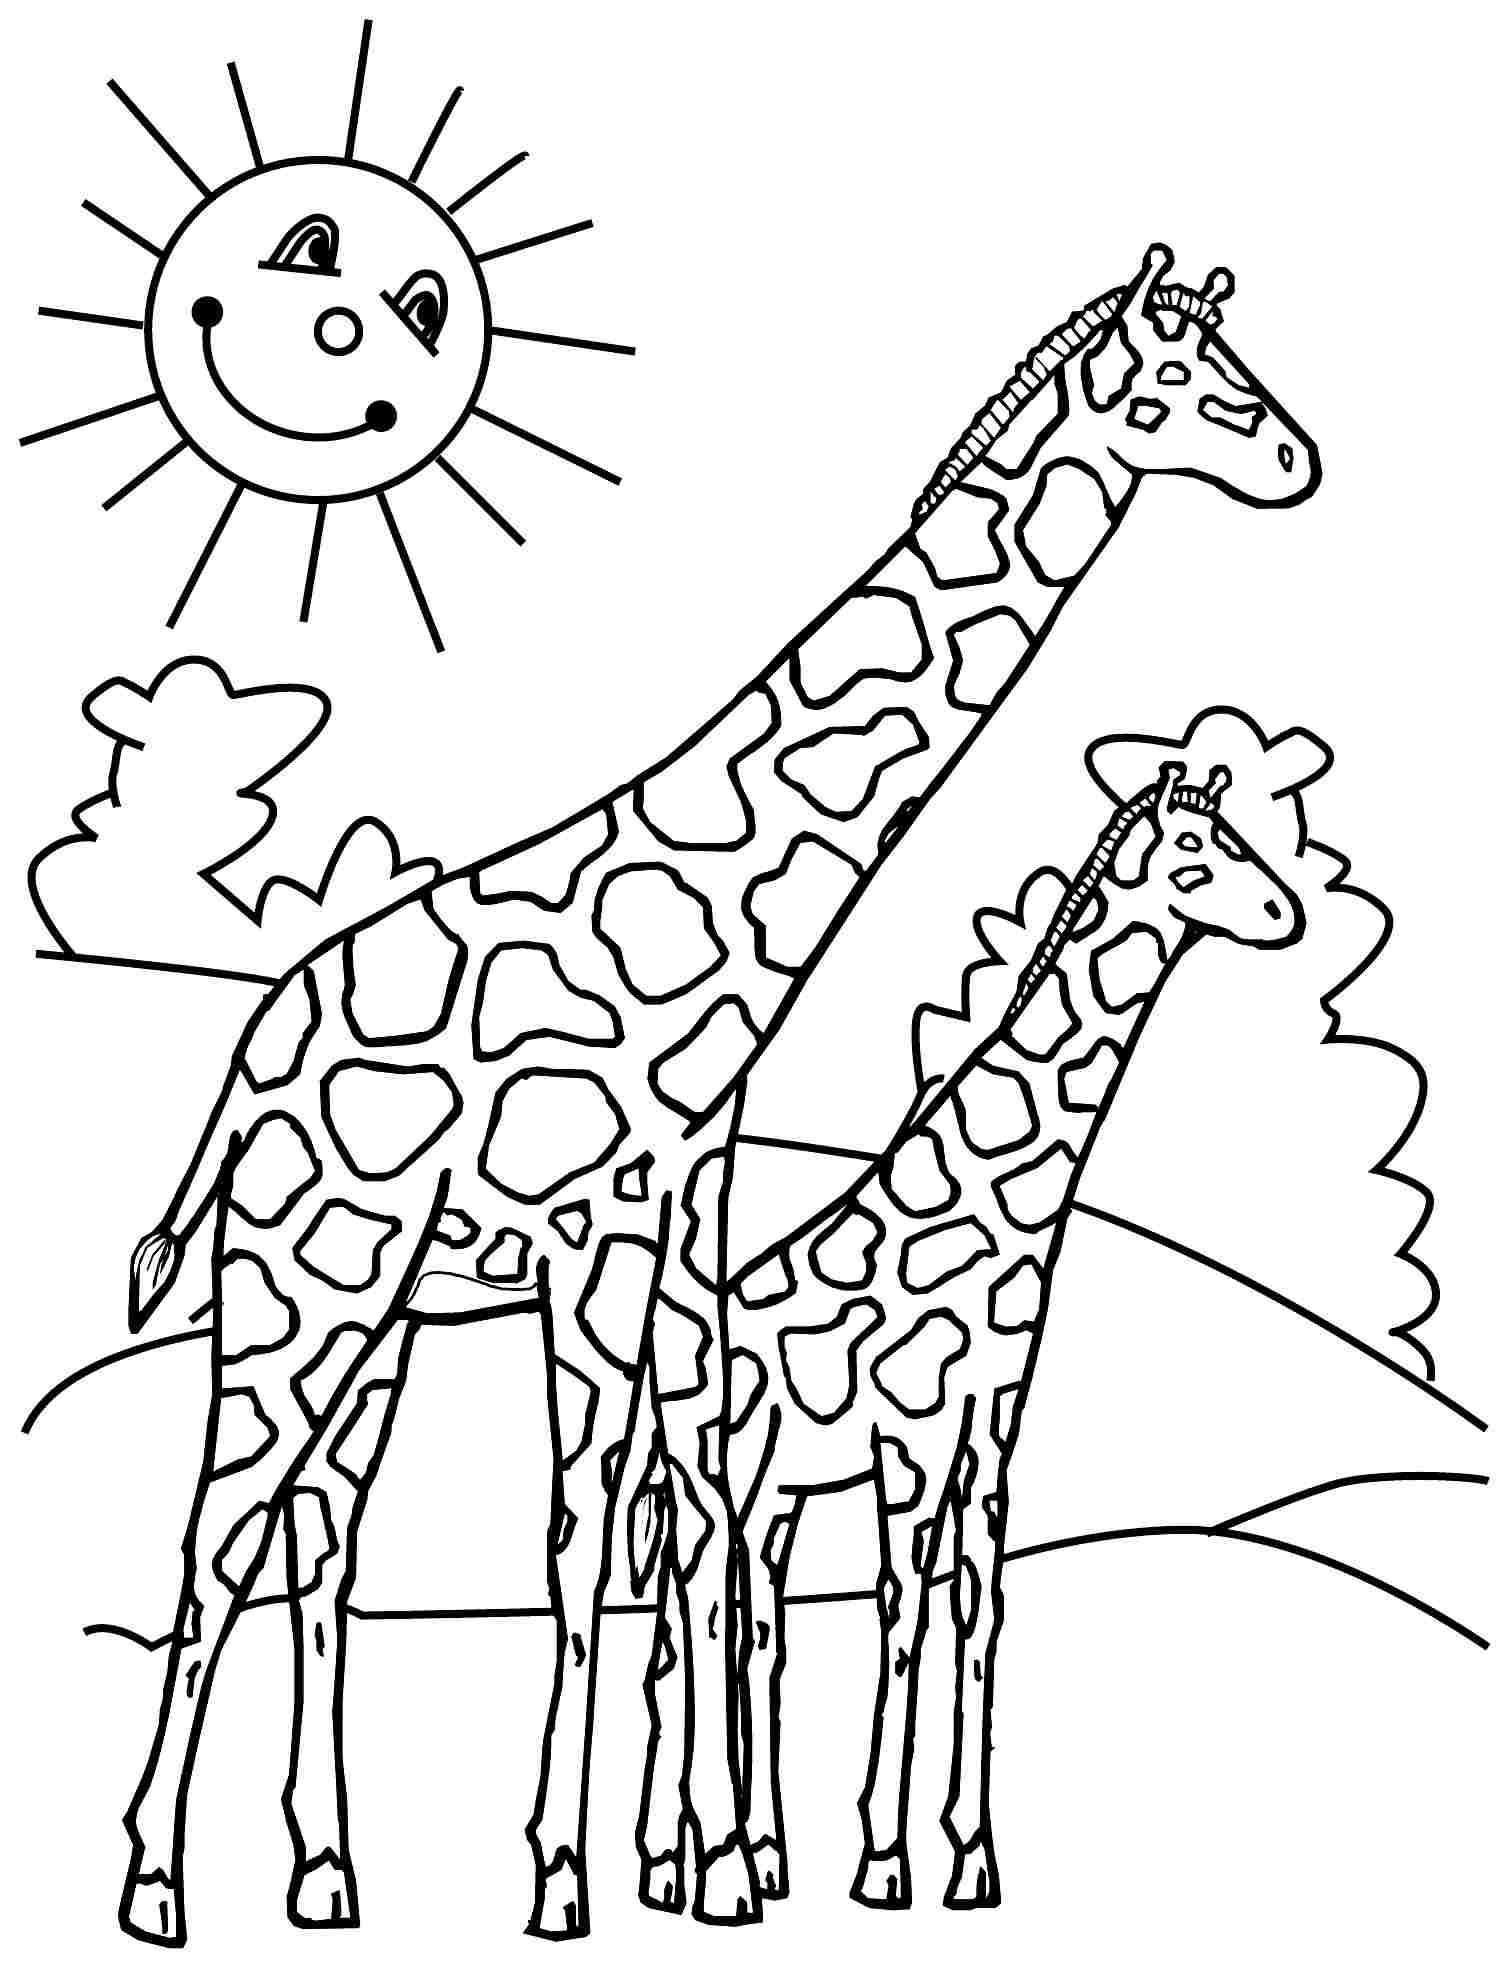 coloring picture to print giraffes coloring pages to download and print for free print coloring picture to